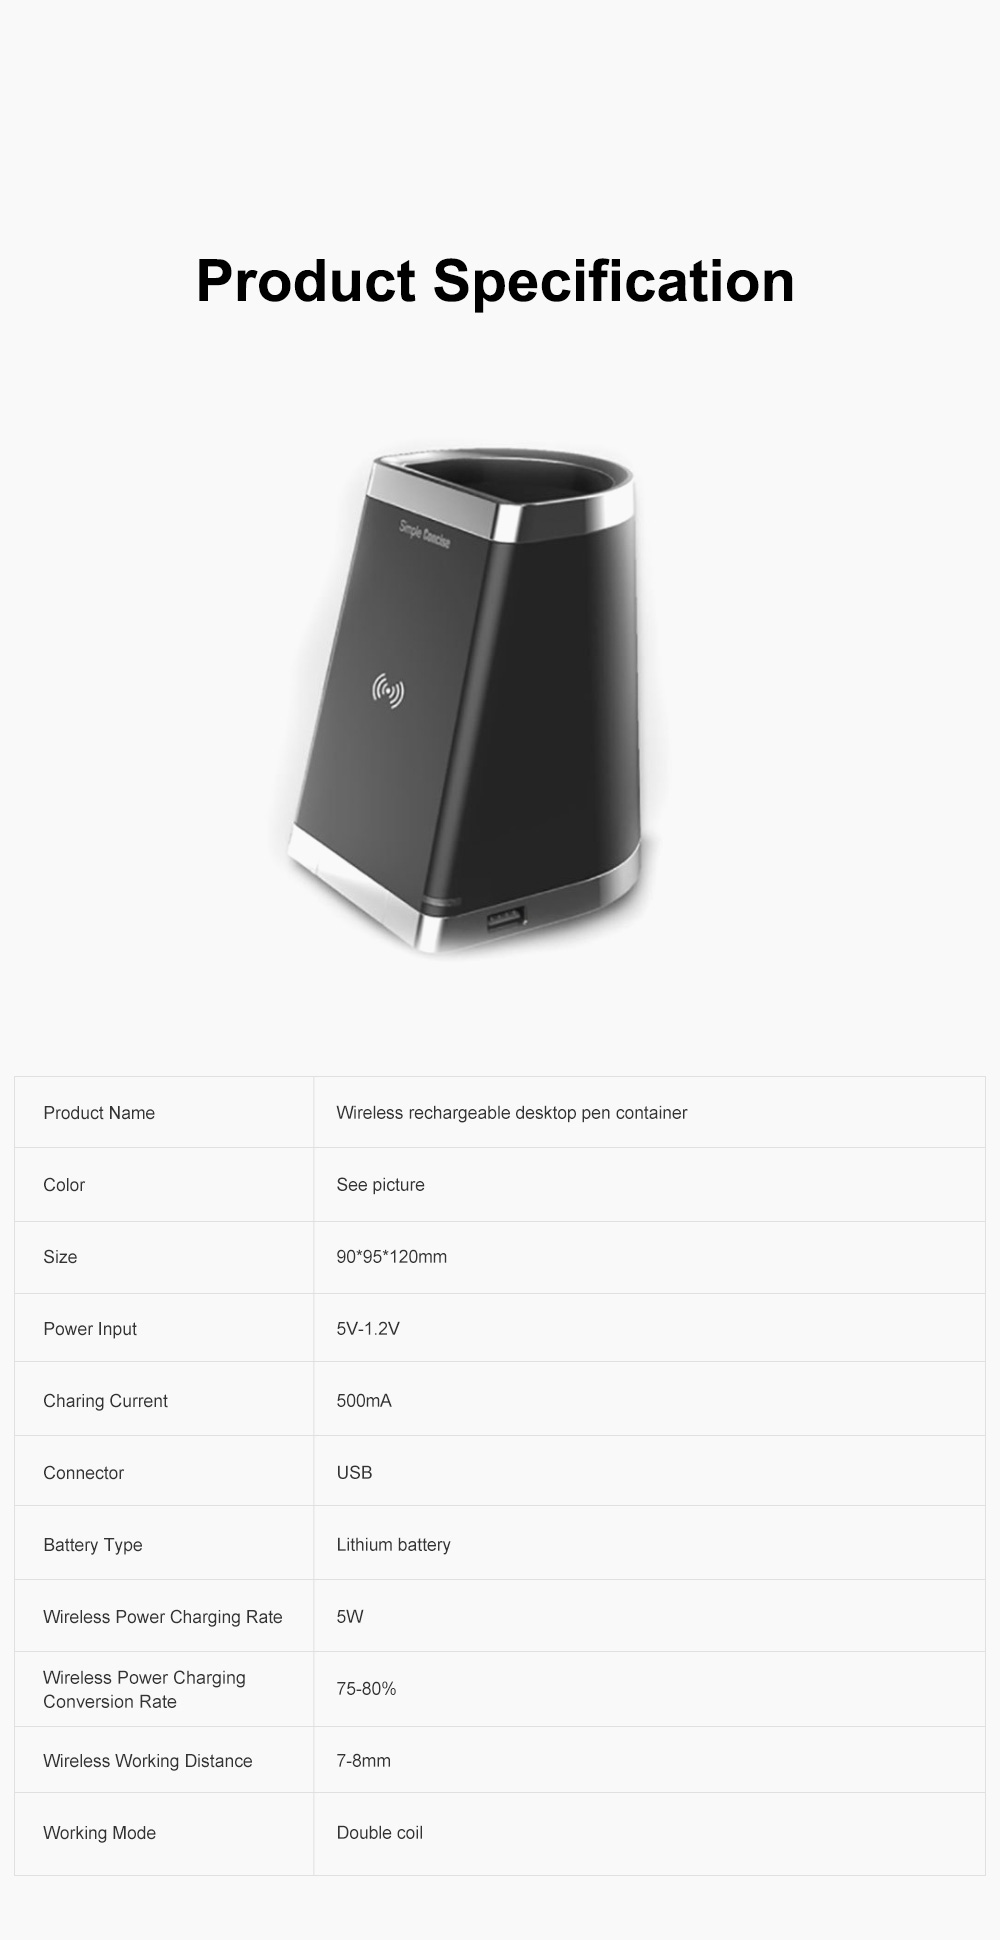 Wireless Rechargeable Desktop Pen Container for Table Top Storage Desktop Brush Pot Charger Drawer-like Charging Stand Tubular Pen Rack 6